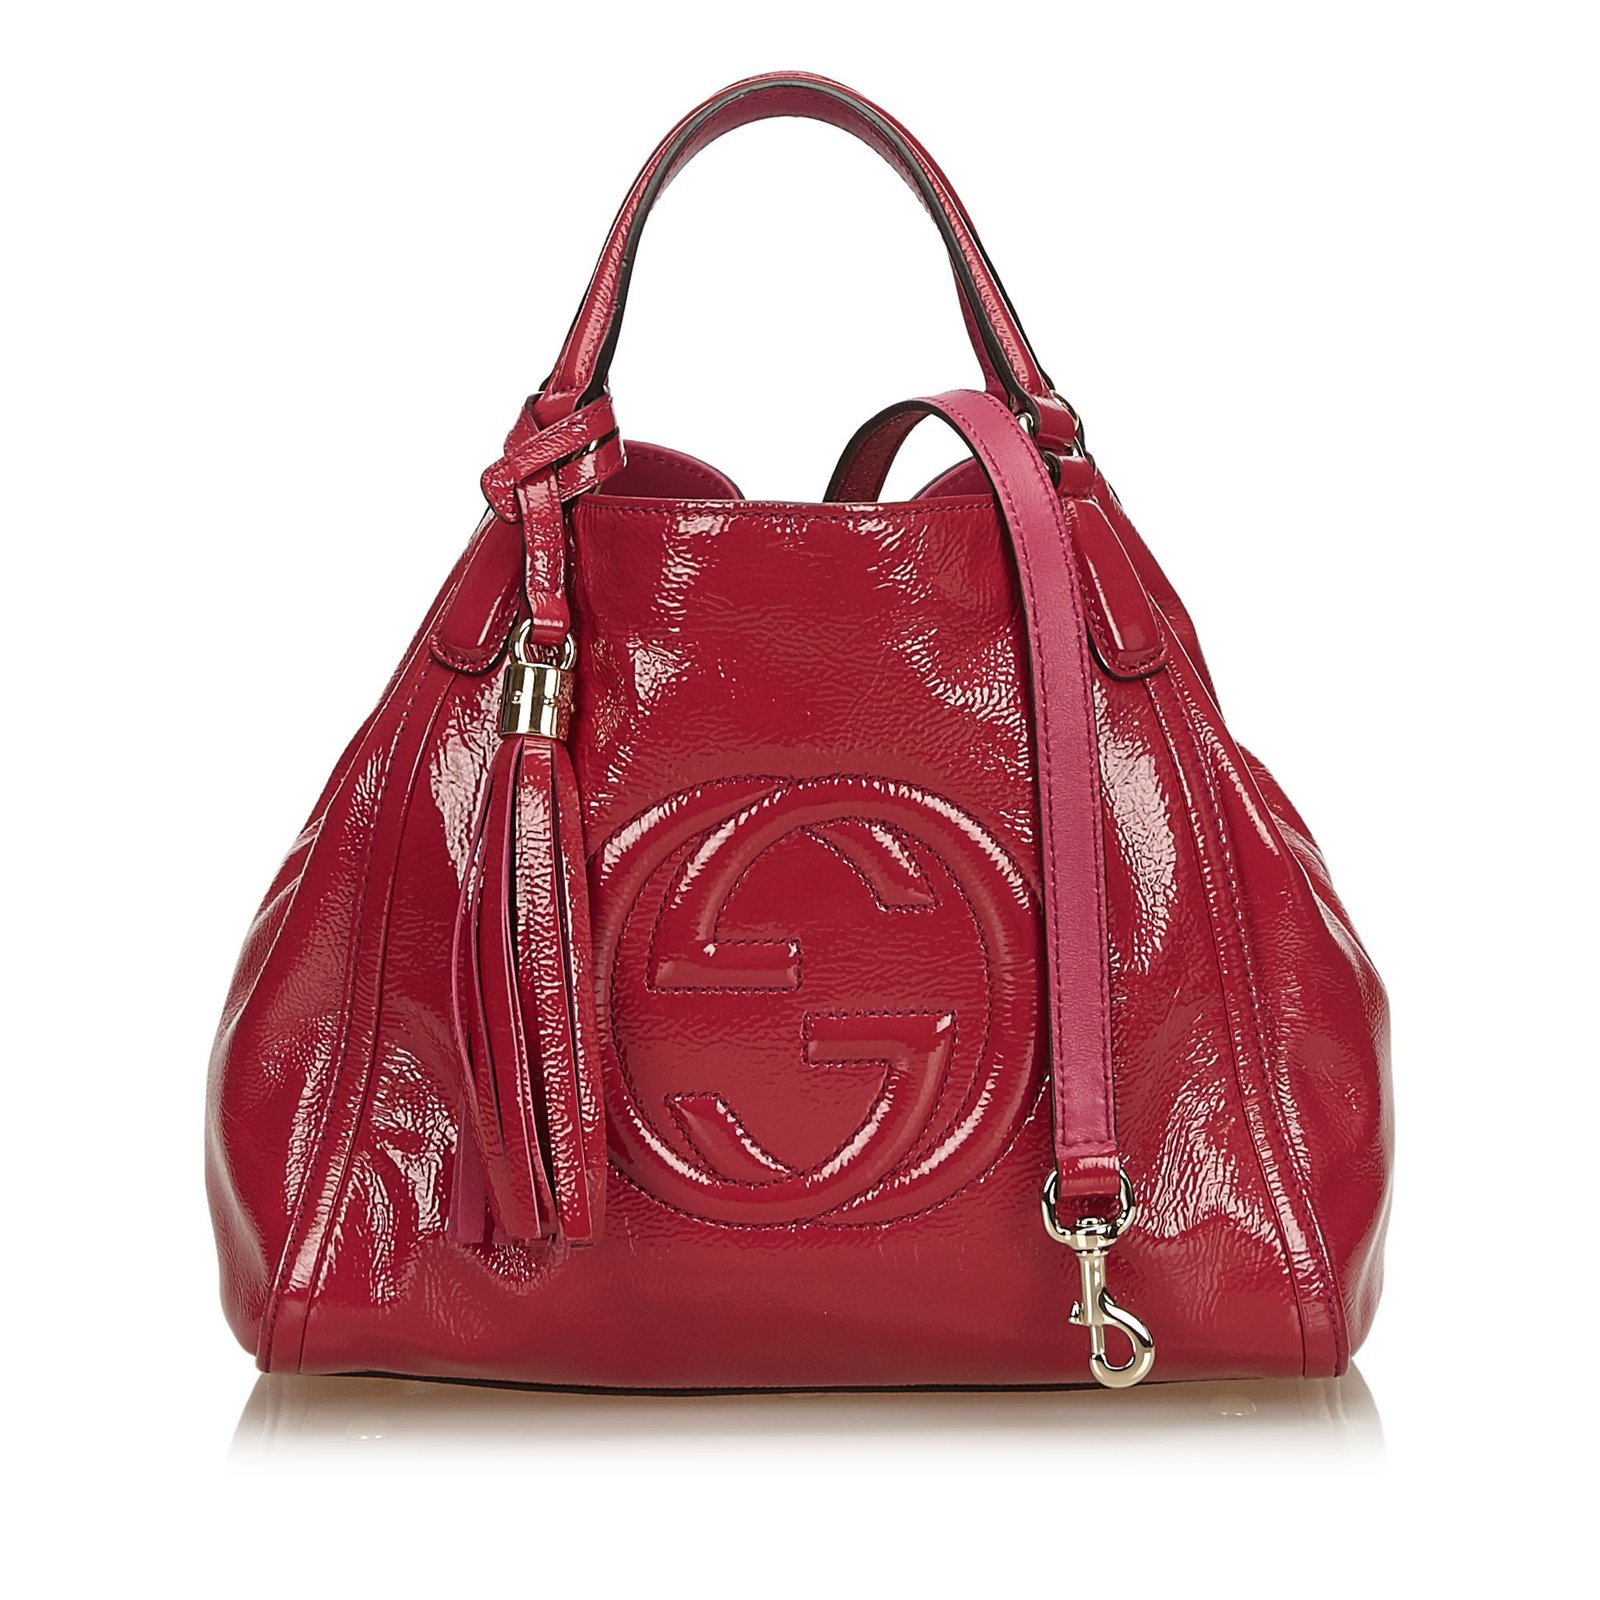 acbad35555a Gucci Soho Patent Leather Tote Bag Totes Leather